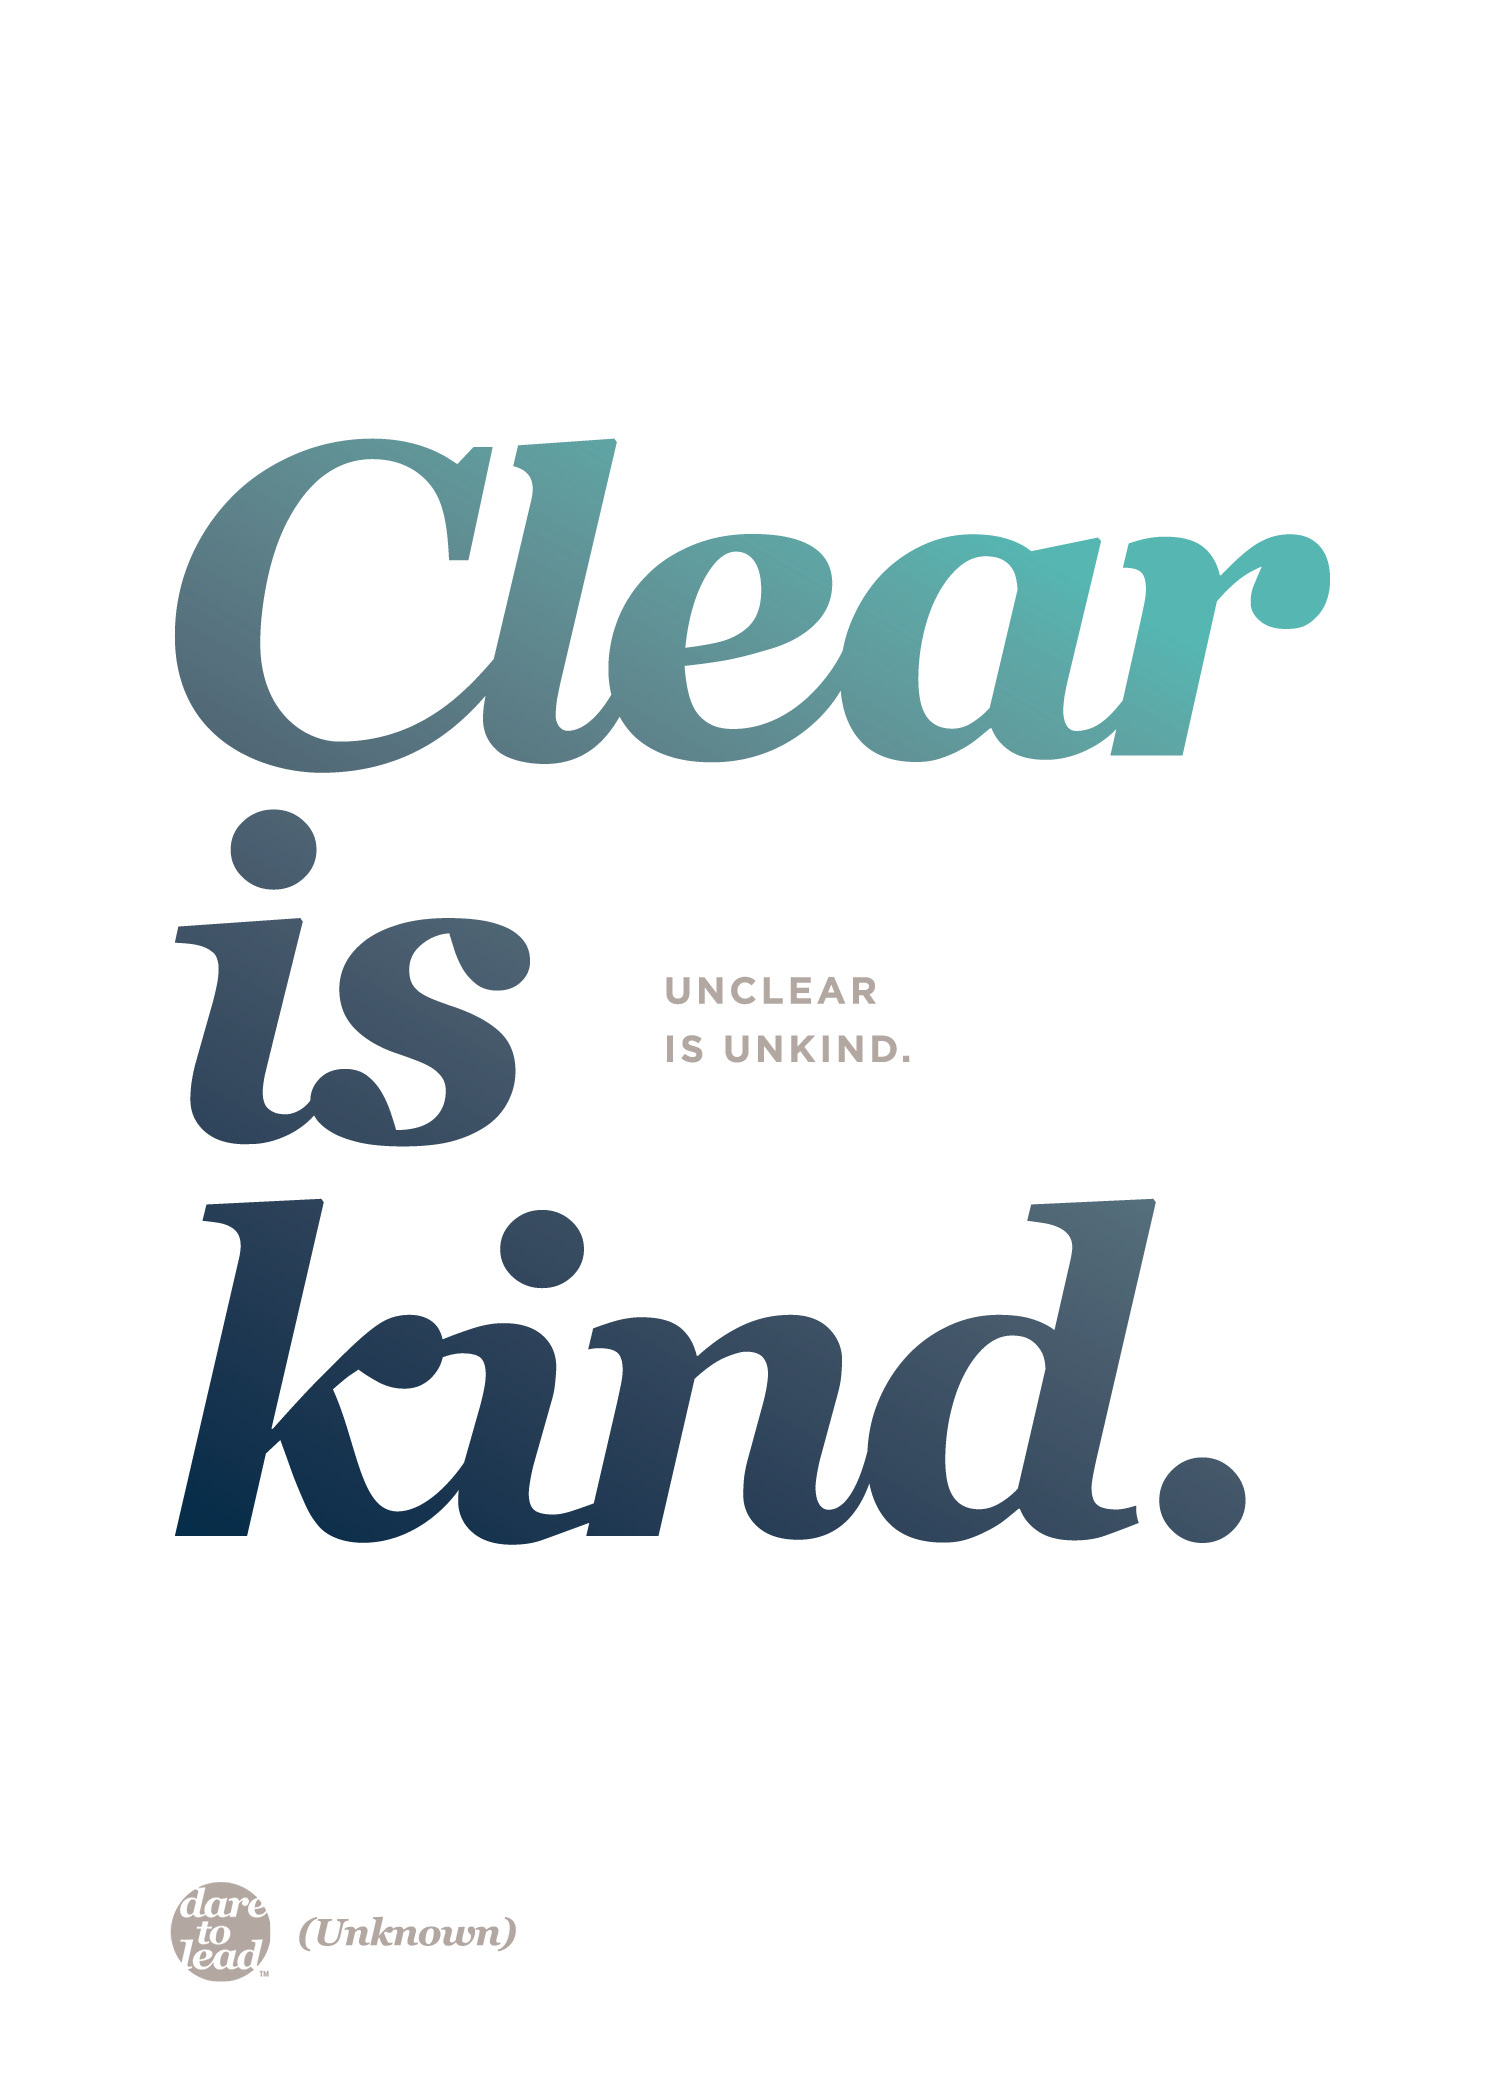 """Clear is kind. Unclear is unkind."" - Author unknown"